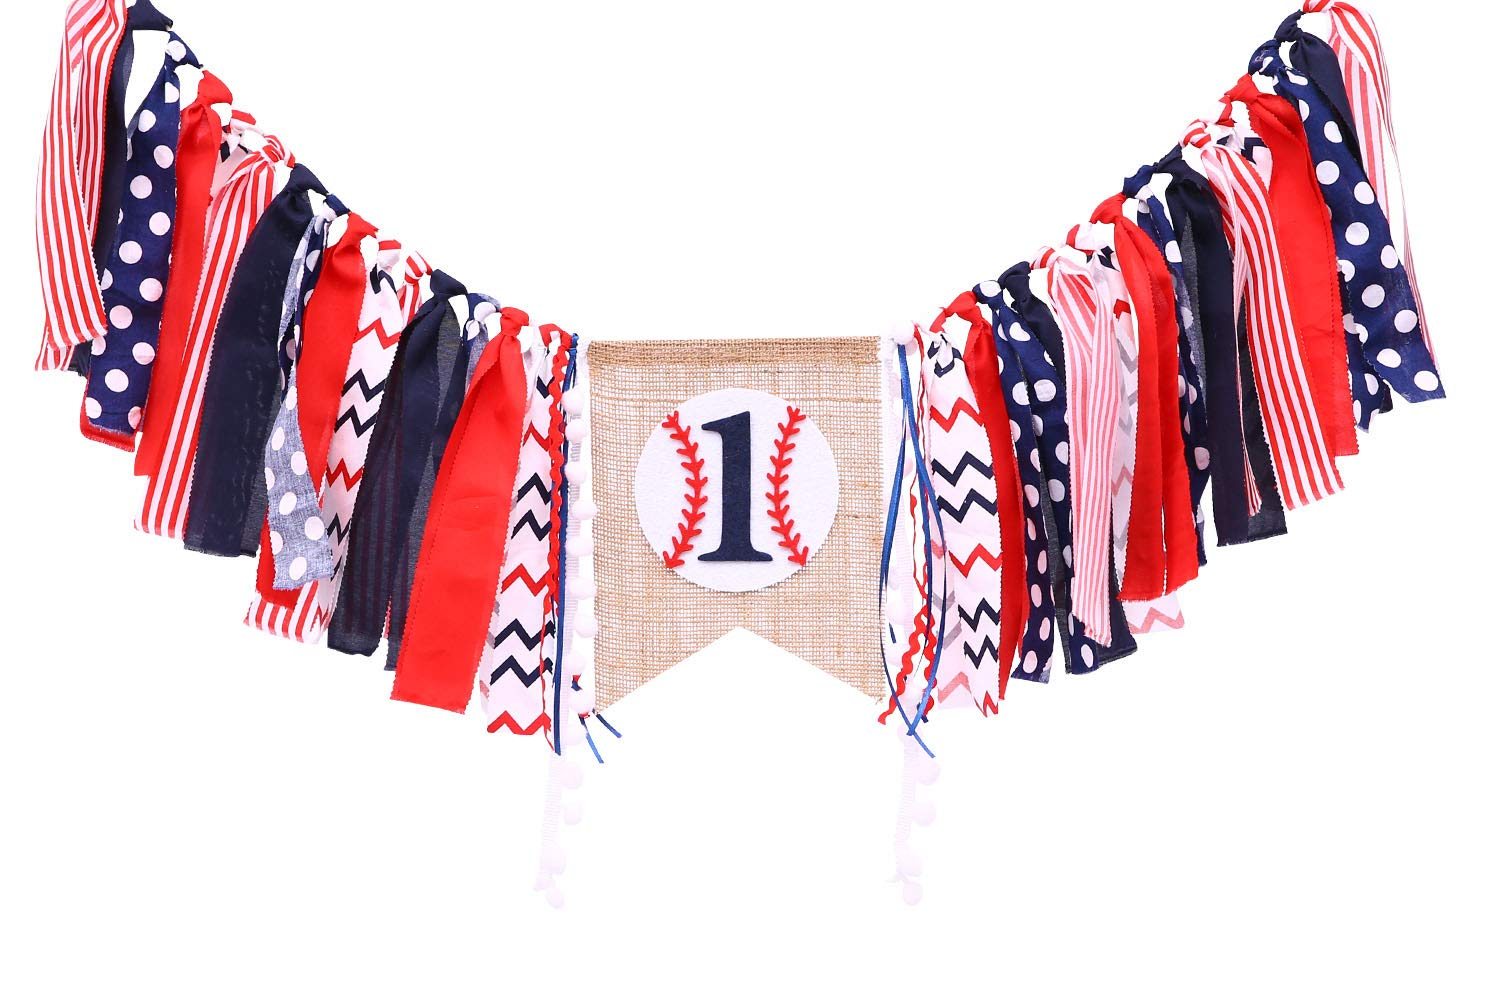 Baseball Banner For 1 St Birthday - First Birthday Decorations For Baseball Rag Tie Fabric Garland, Photo Booth Props Red White Blue, Birthday Souvenir And Gifts For Boy